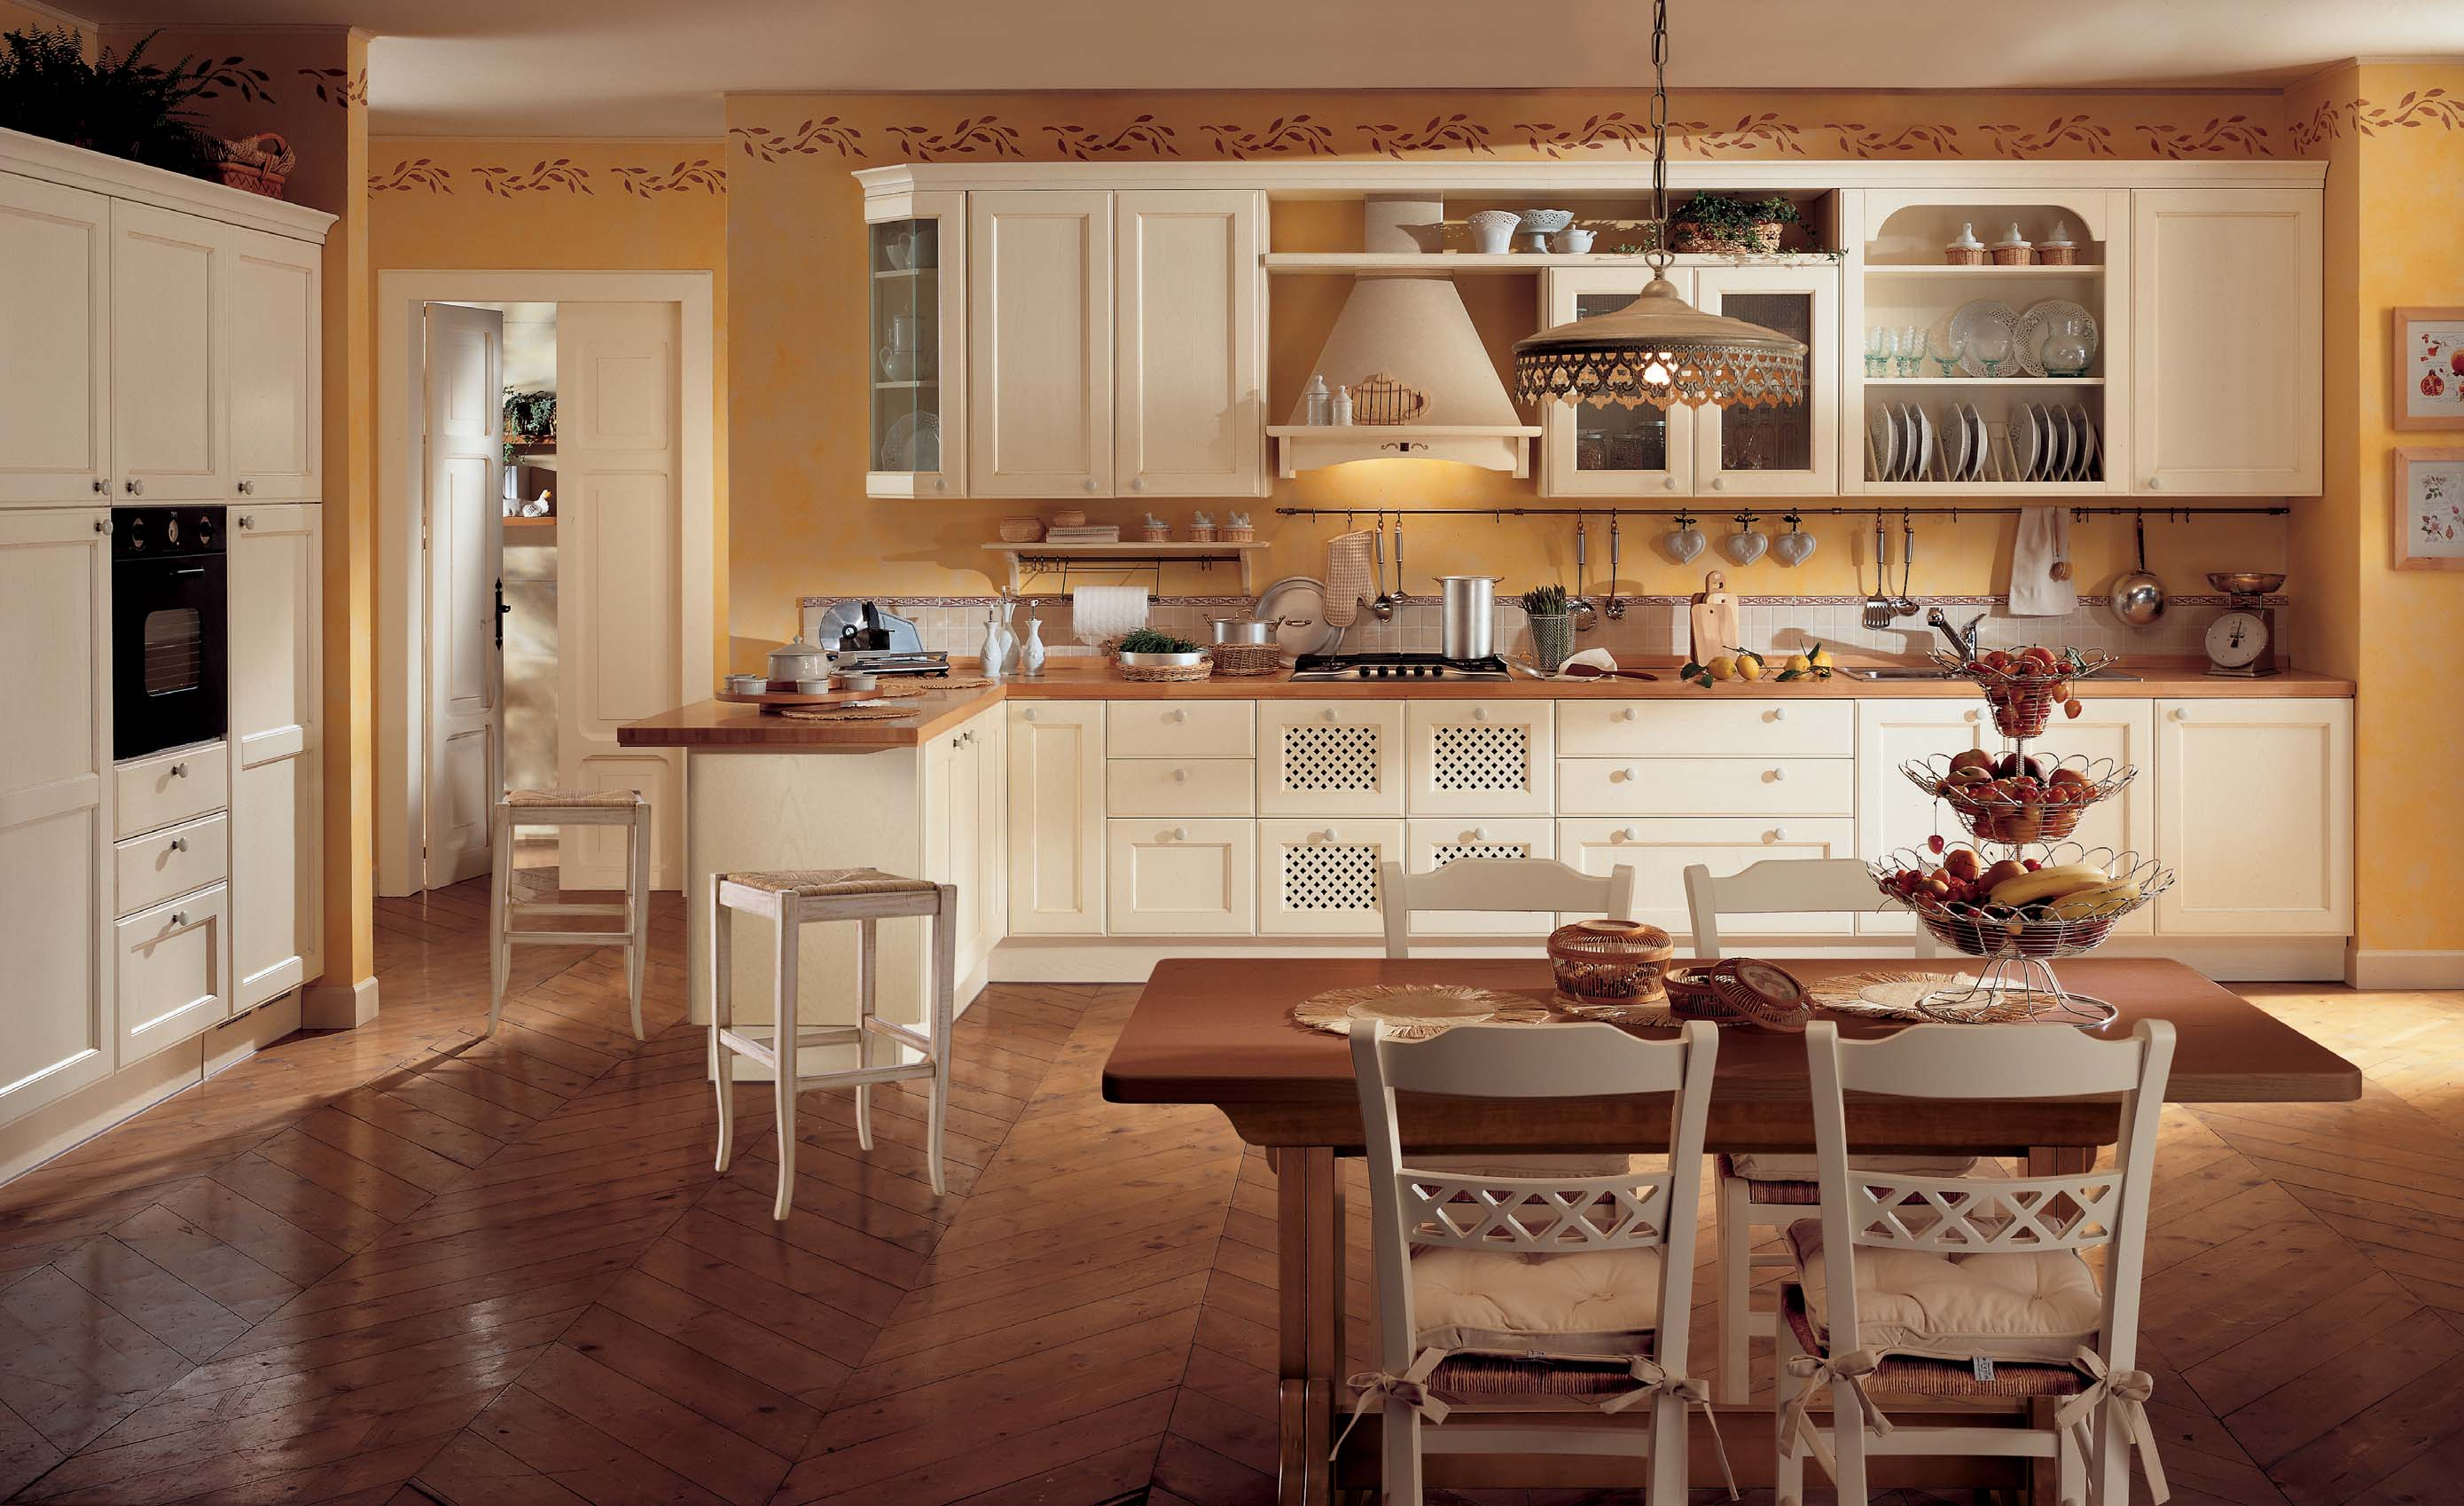 Interior Exterior Plan Large Kitchen Idea In A Classy Style